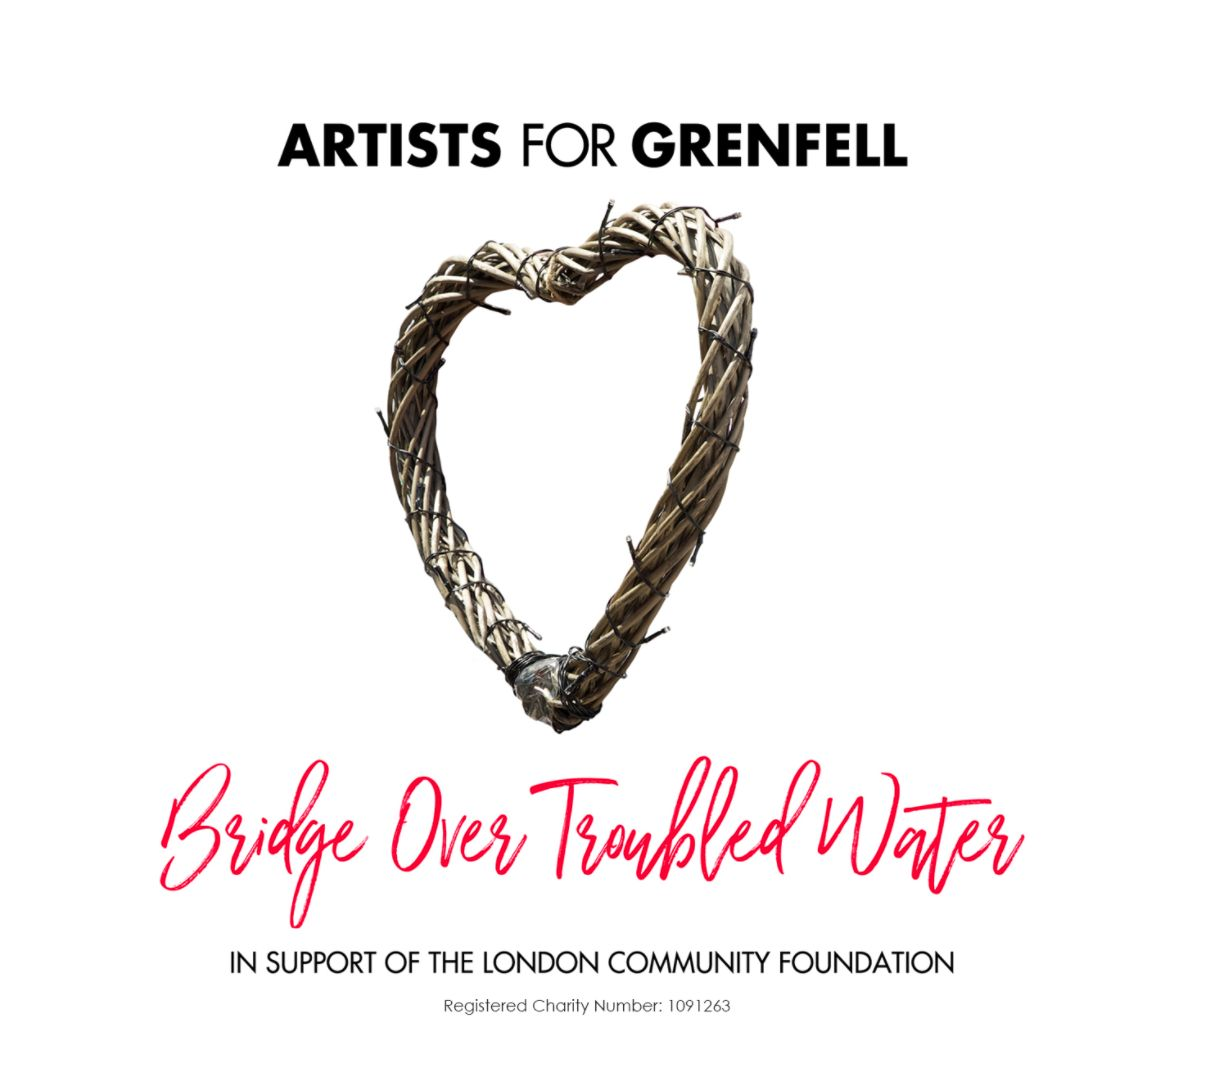 Stars Cover 'Bridge Over Troubled Water' For Grenfell Tower